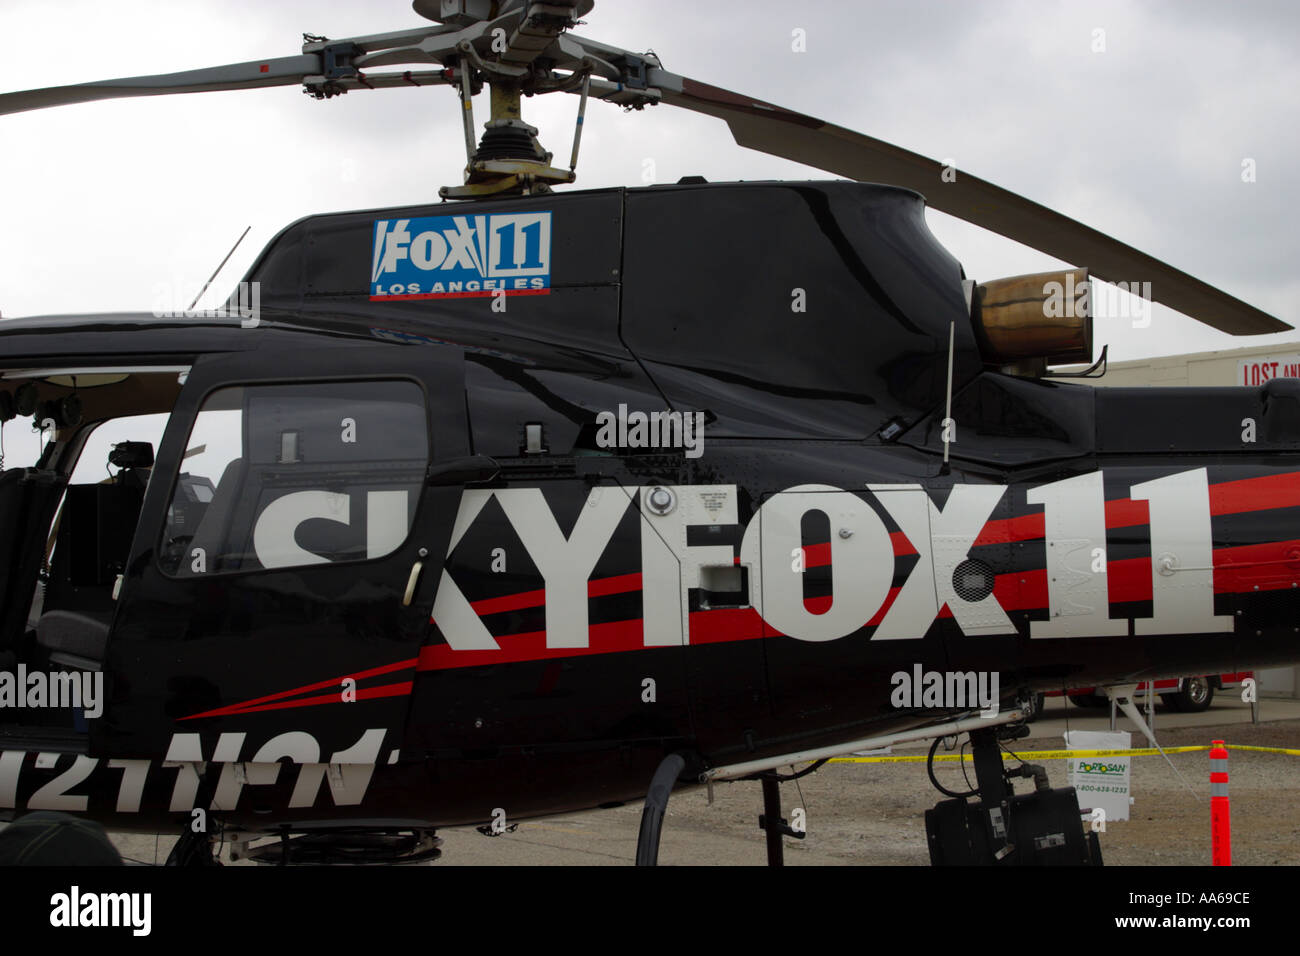 Los Angeles Television Station KTTV Fox Channel 11 News